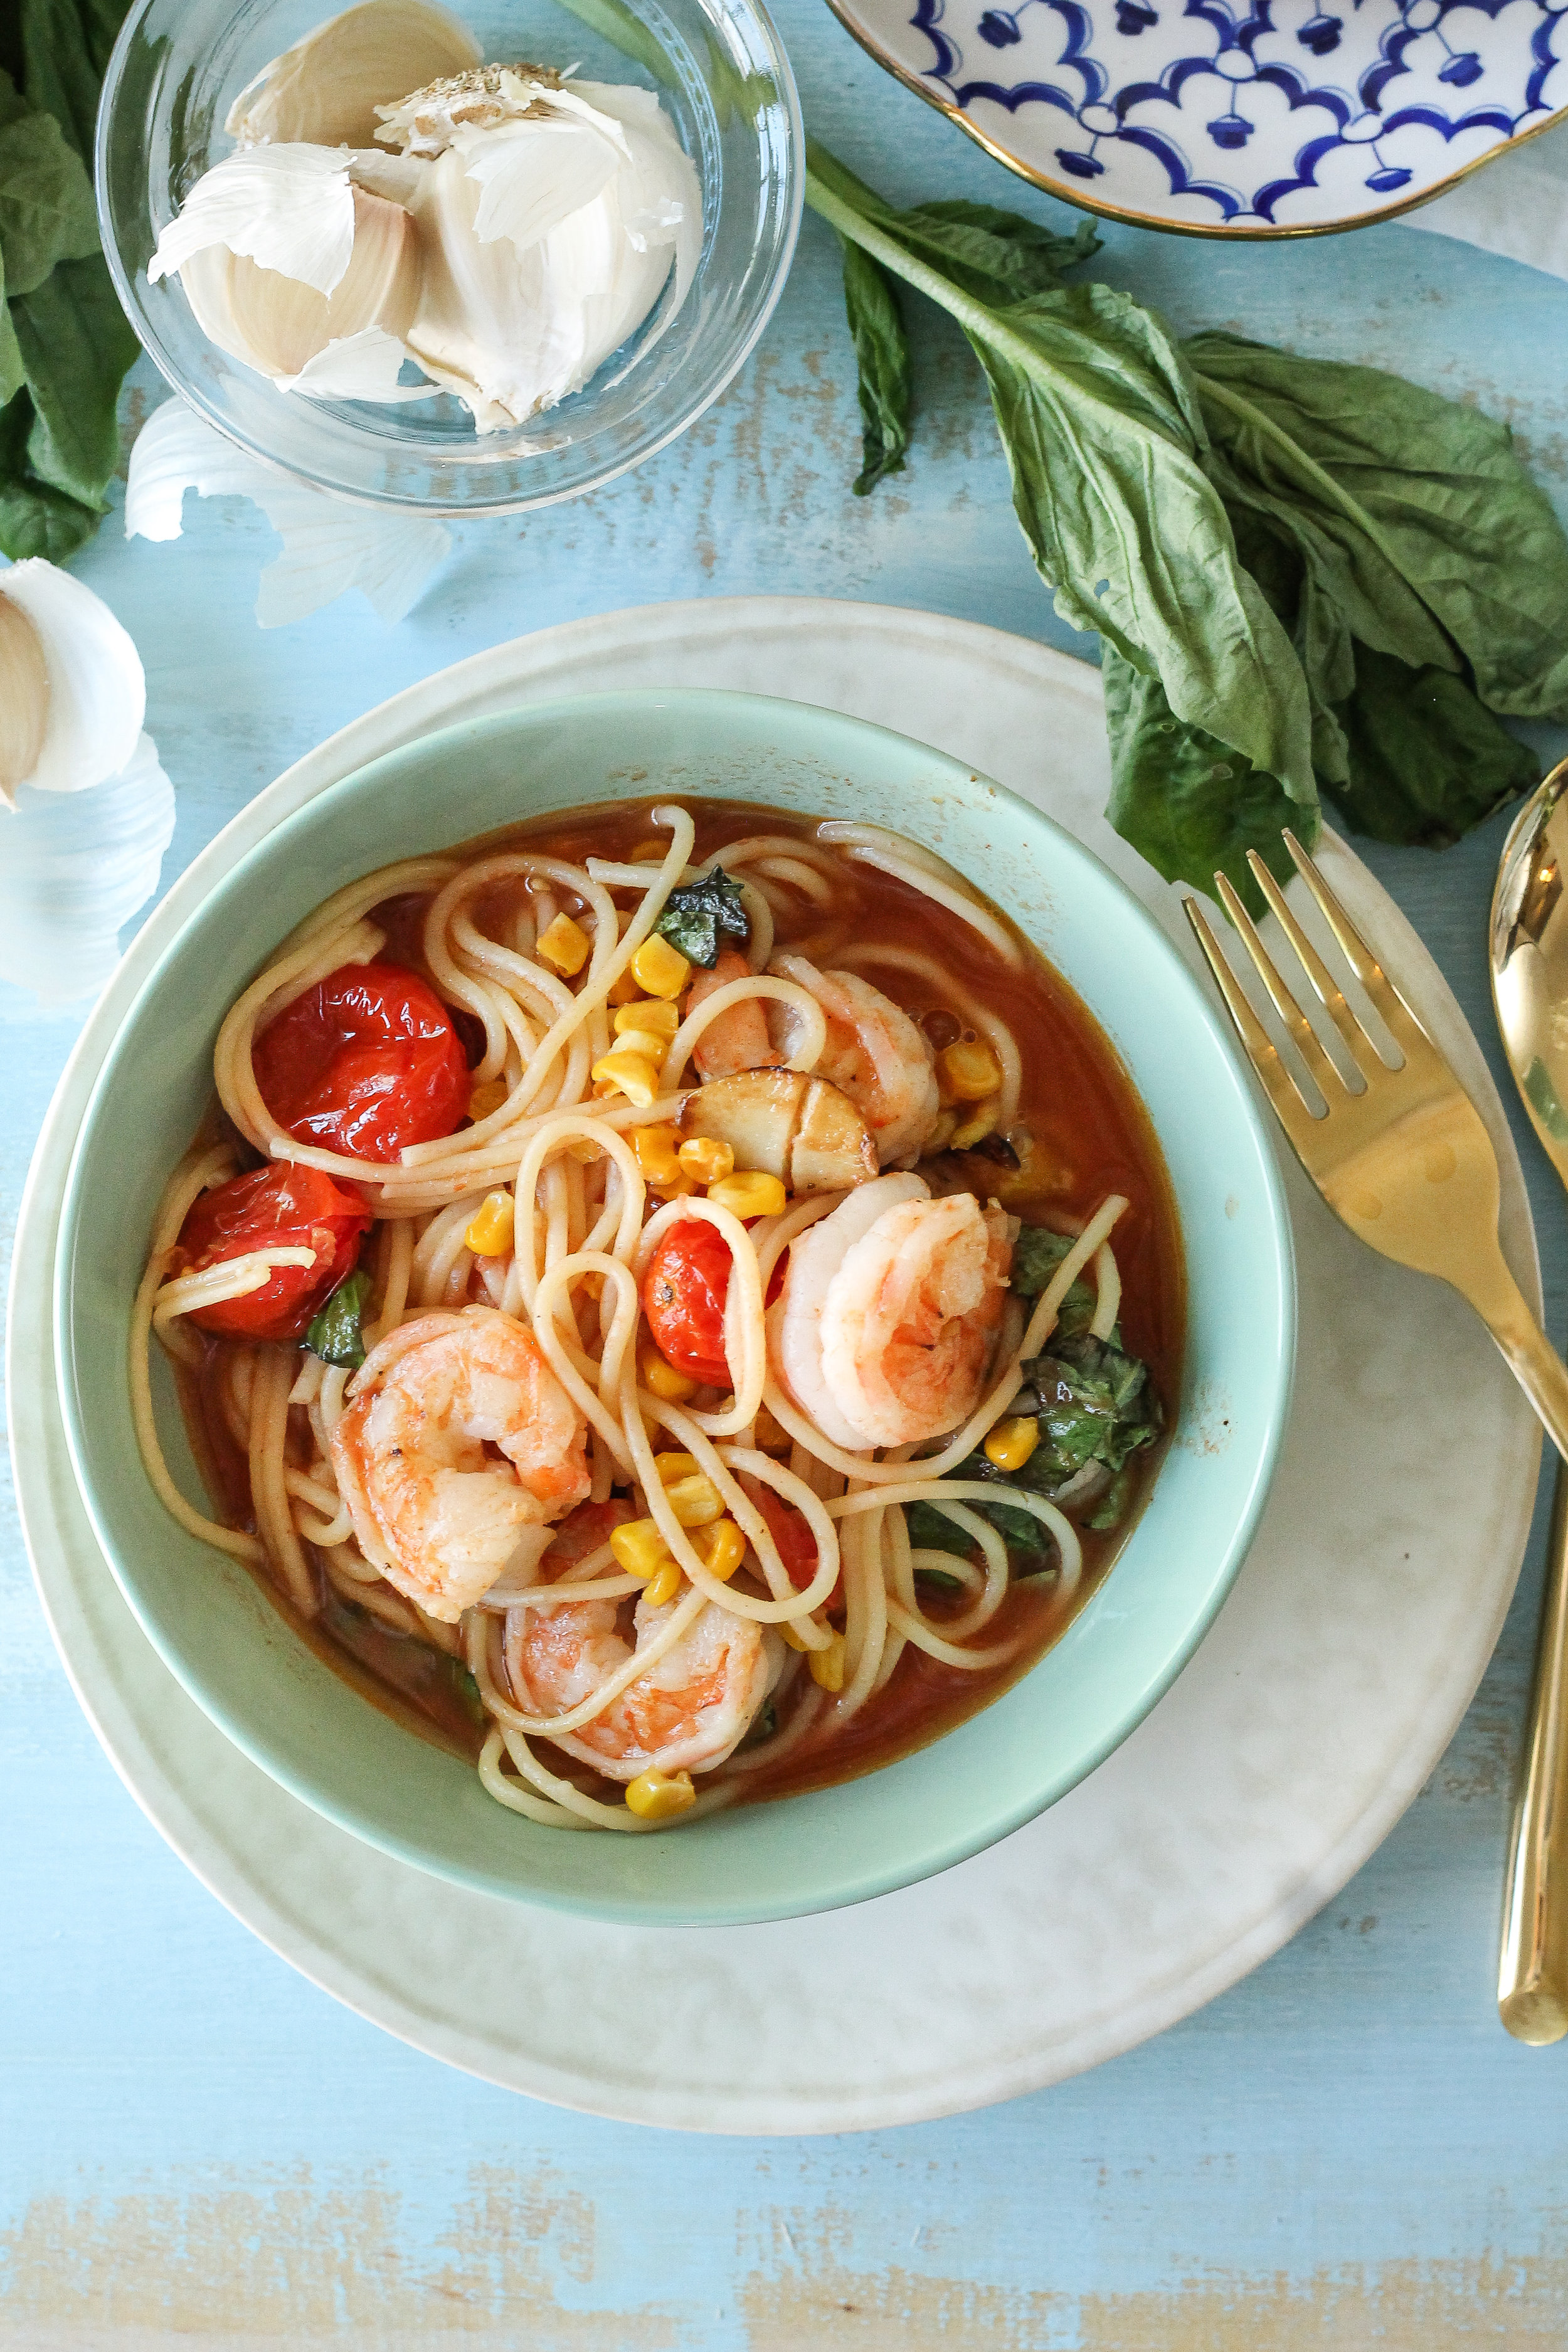 My twist on Summer Spaghetti features all of my favorite summer flavors!  Fresh tomatoes, roasted sweet corn, fresh basil, and spicy Old Bay seasoning make this dish a bowl of heaven!  [ WWW.PEDANTICFOODIE.COM ]